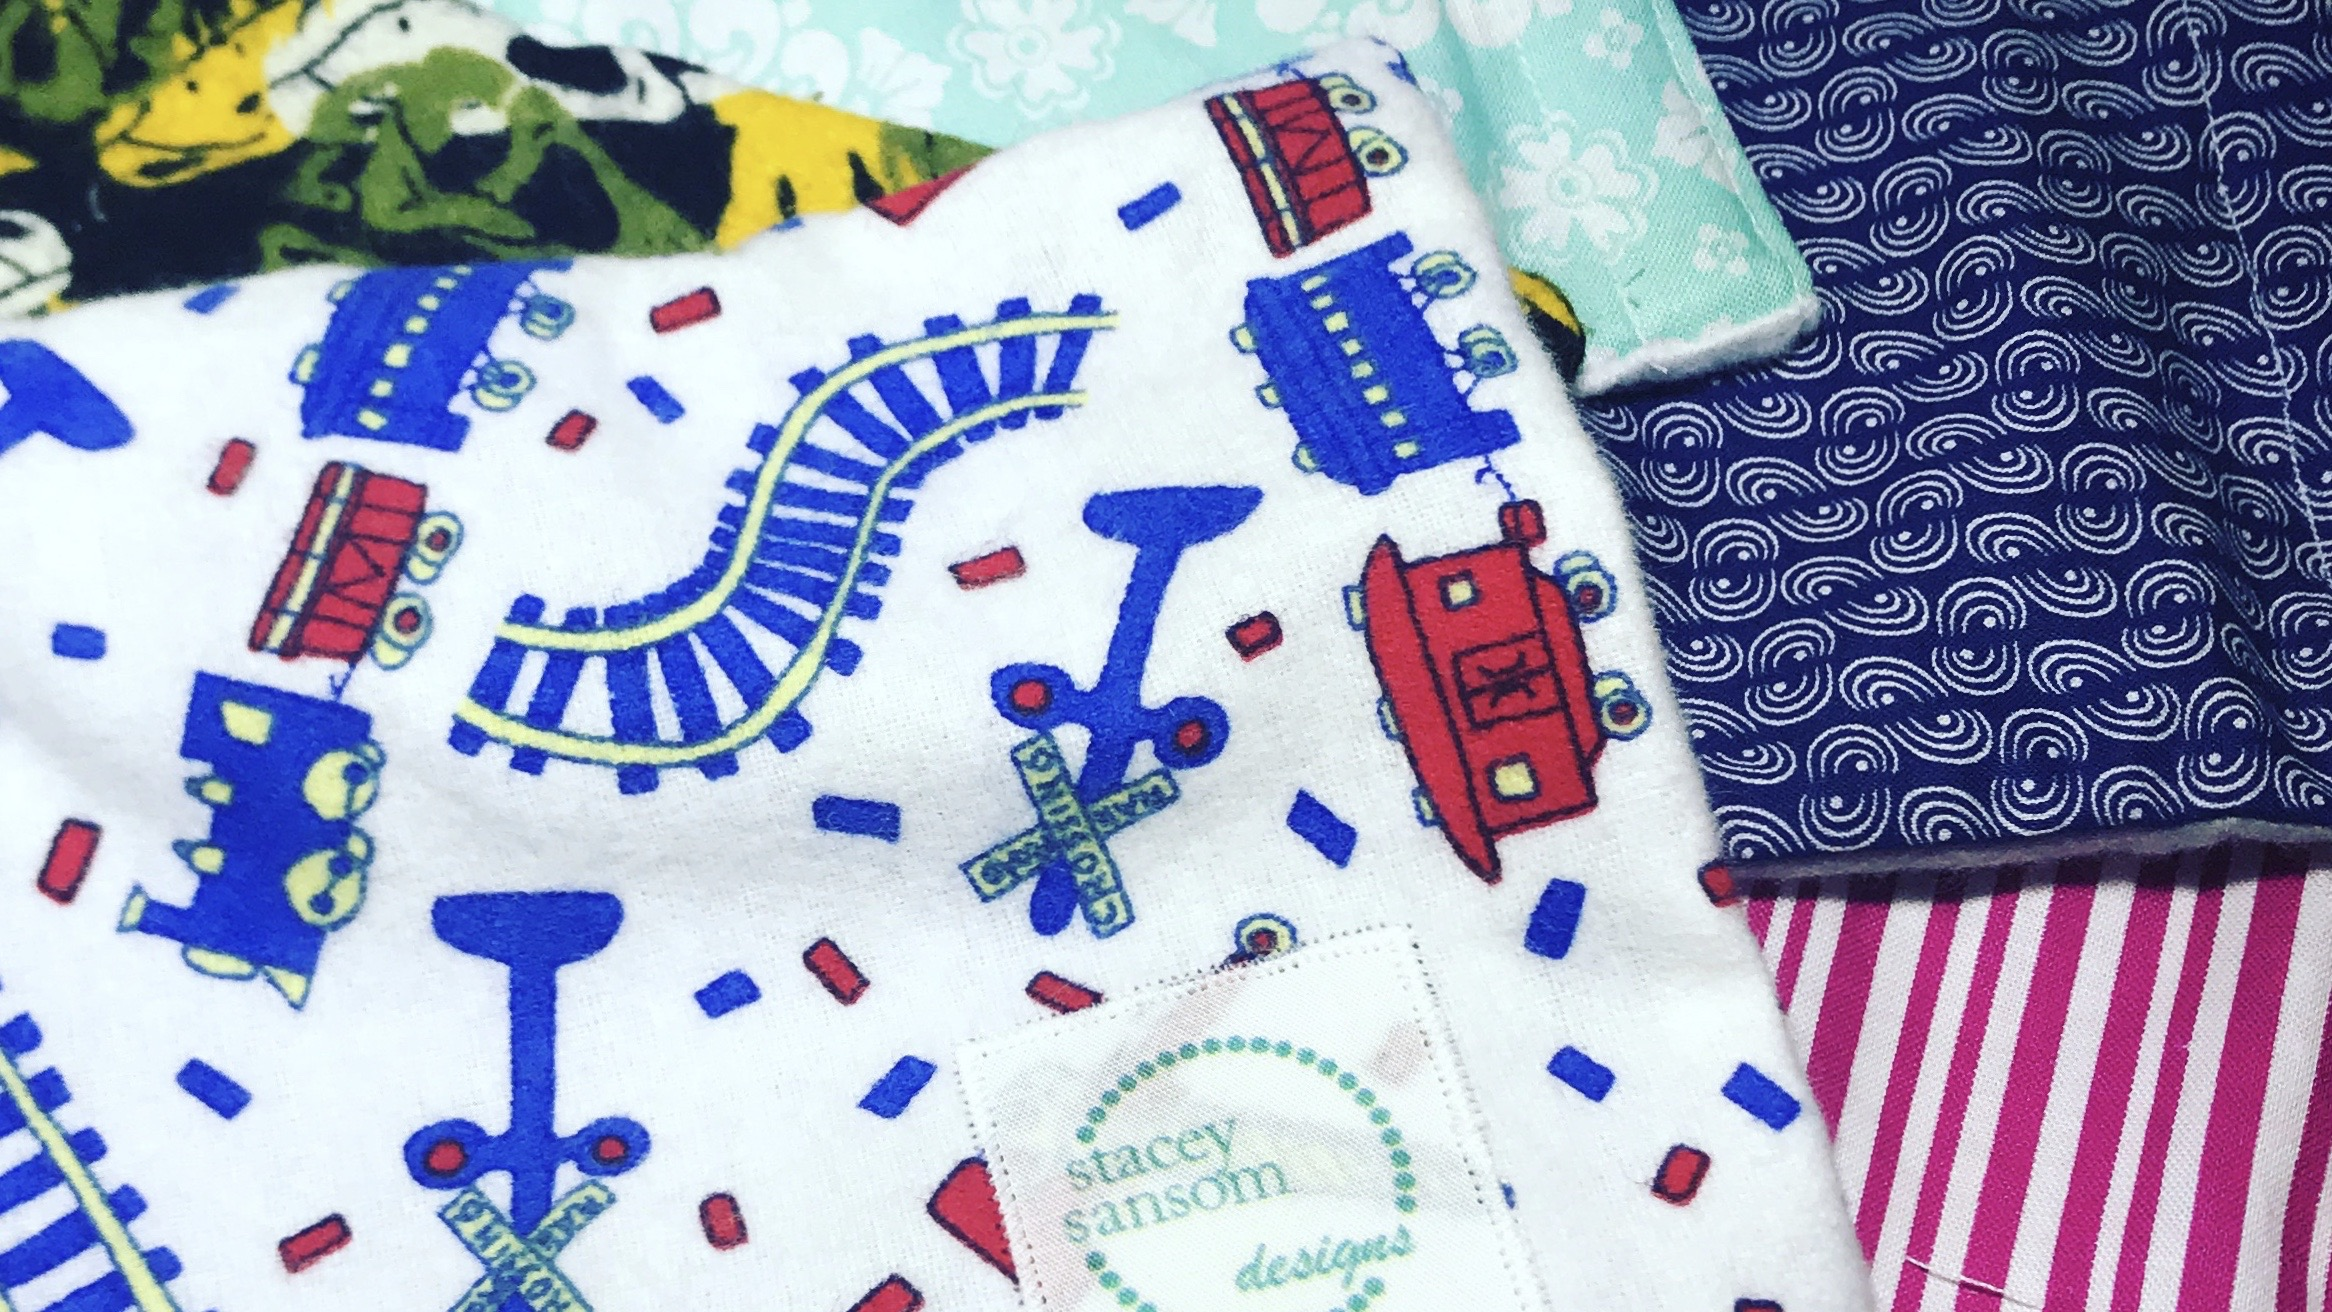 The new ice pack covers released at Stacey Sansom Designs